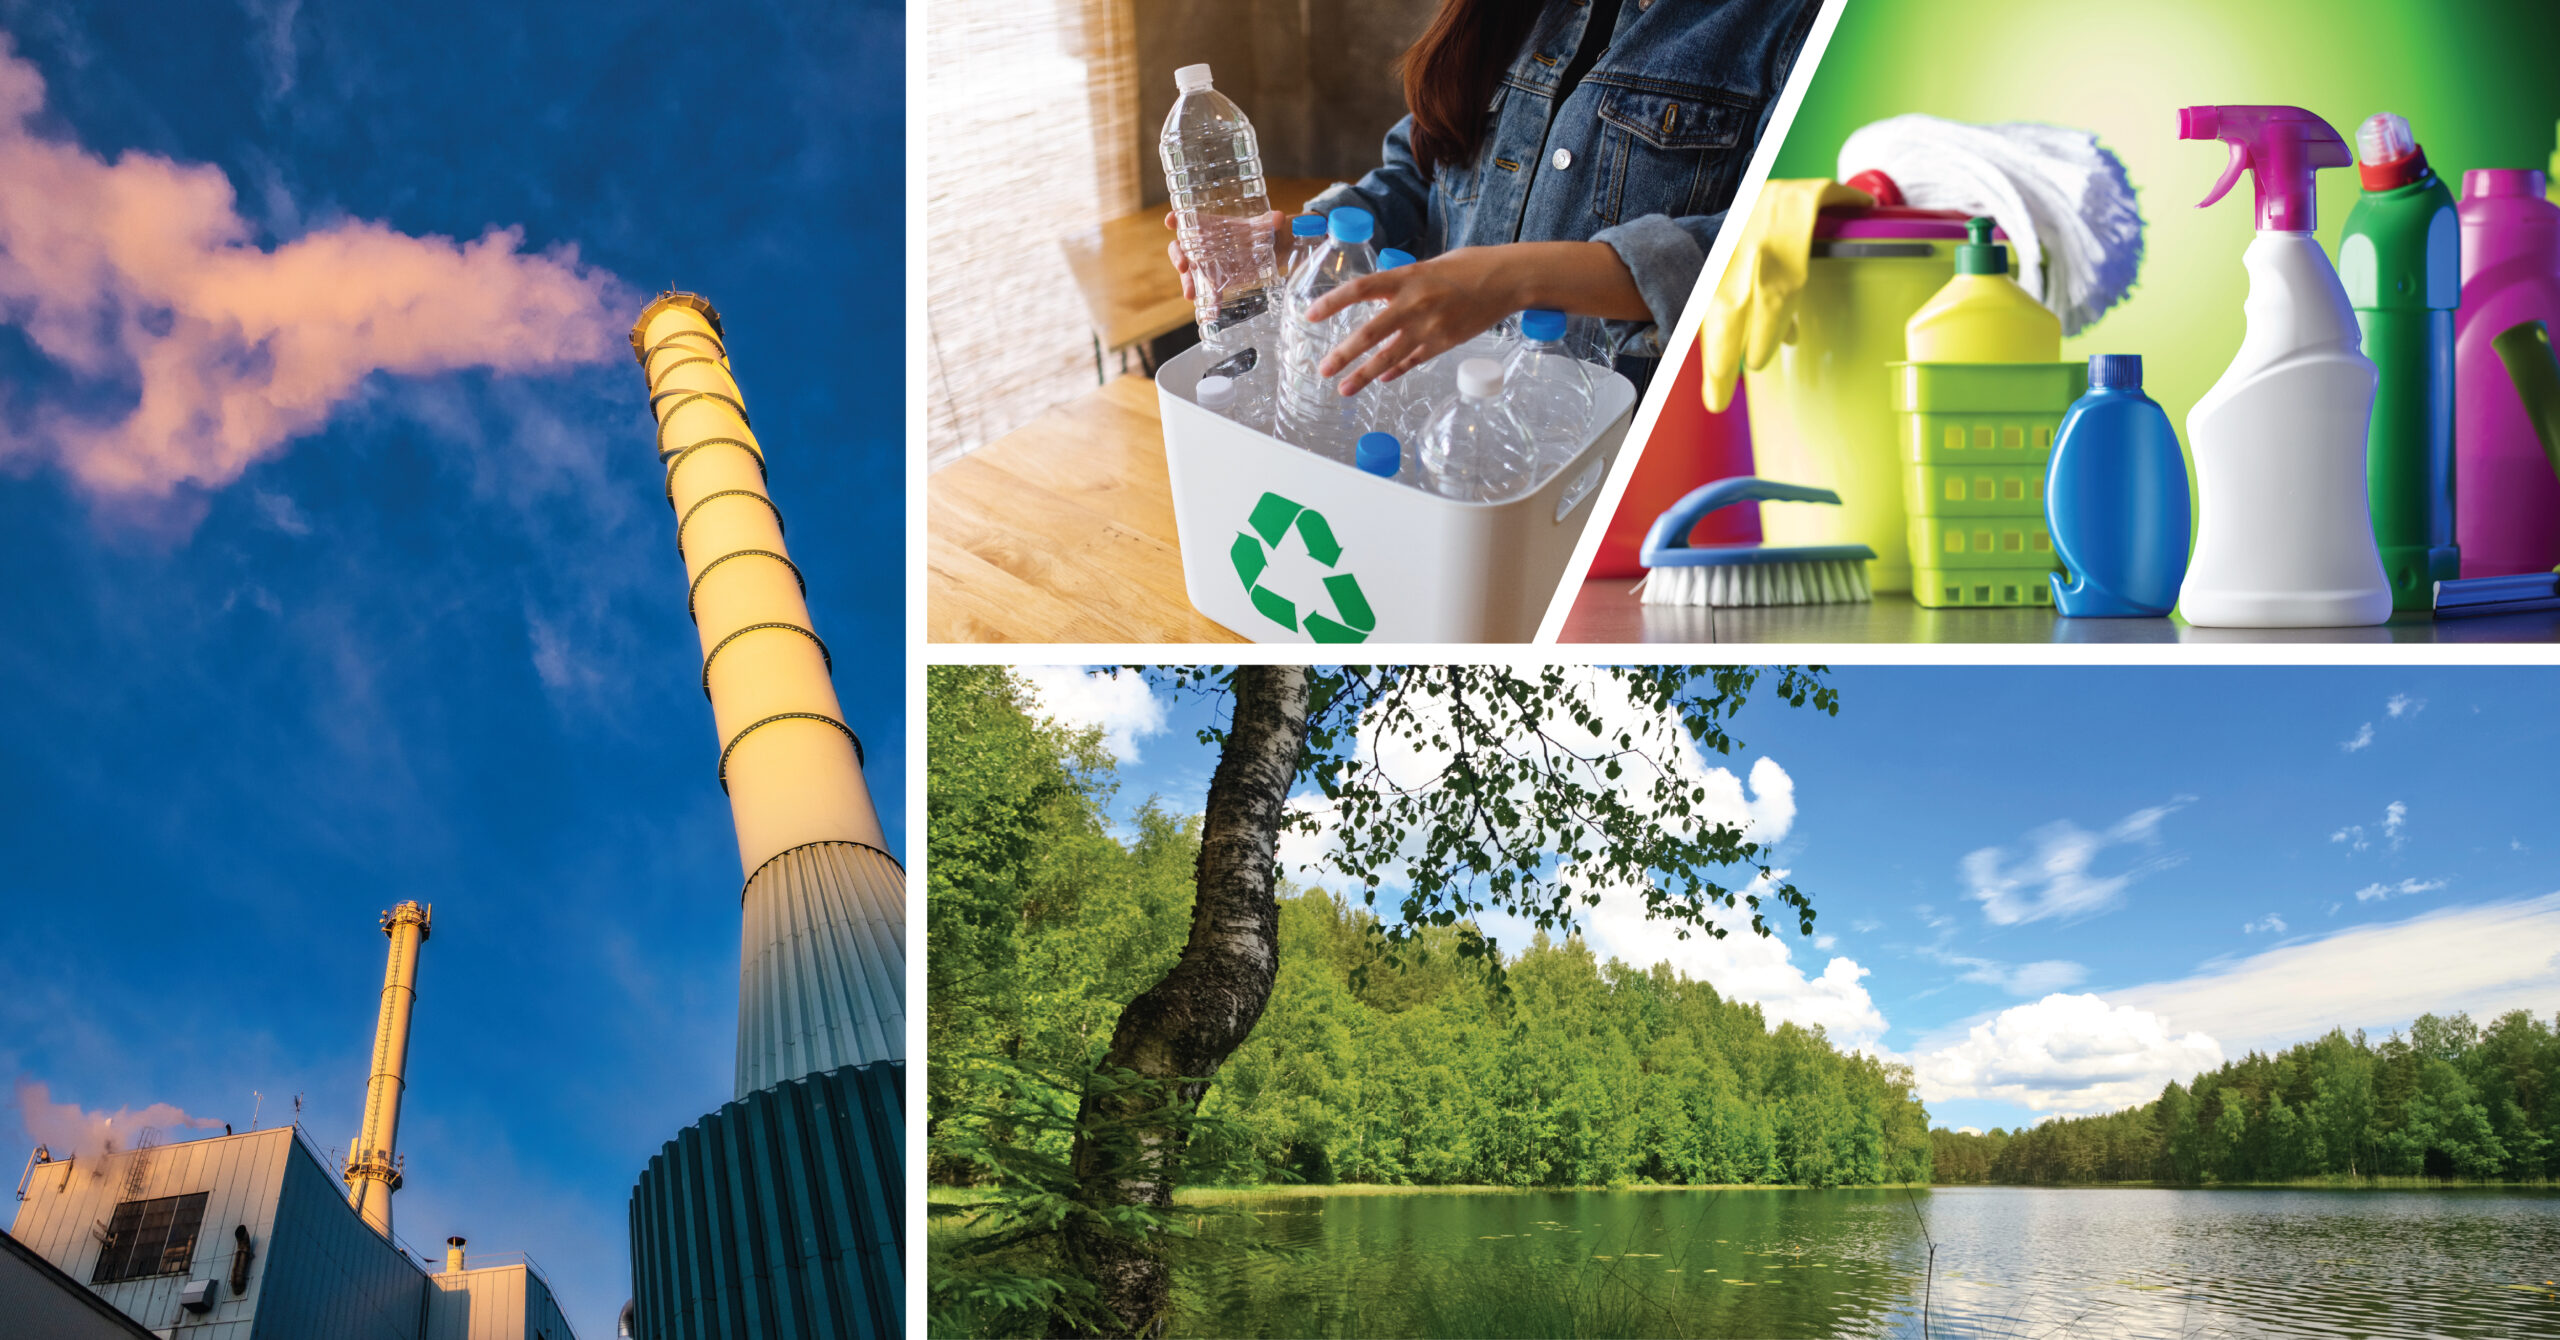 Pollution Prevention (P2) Week 2021 – We All Have a Role